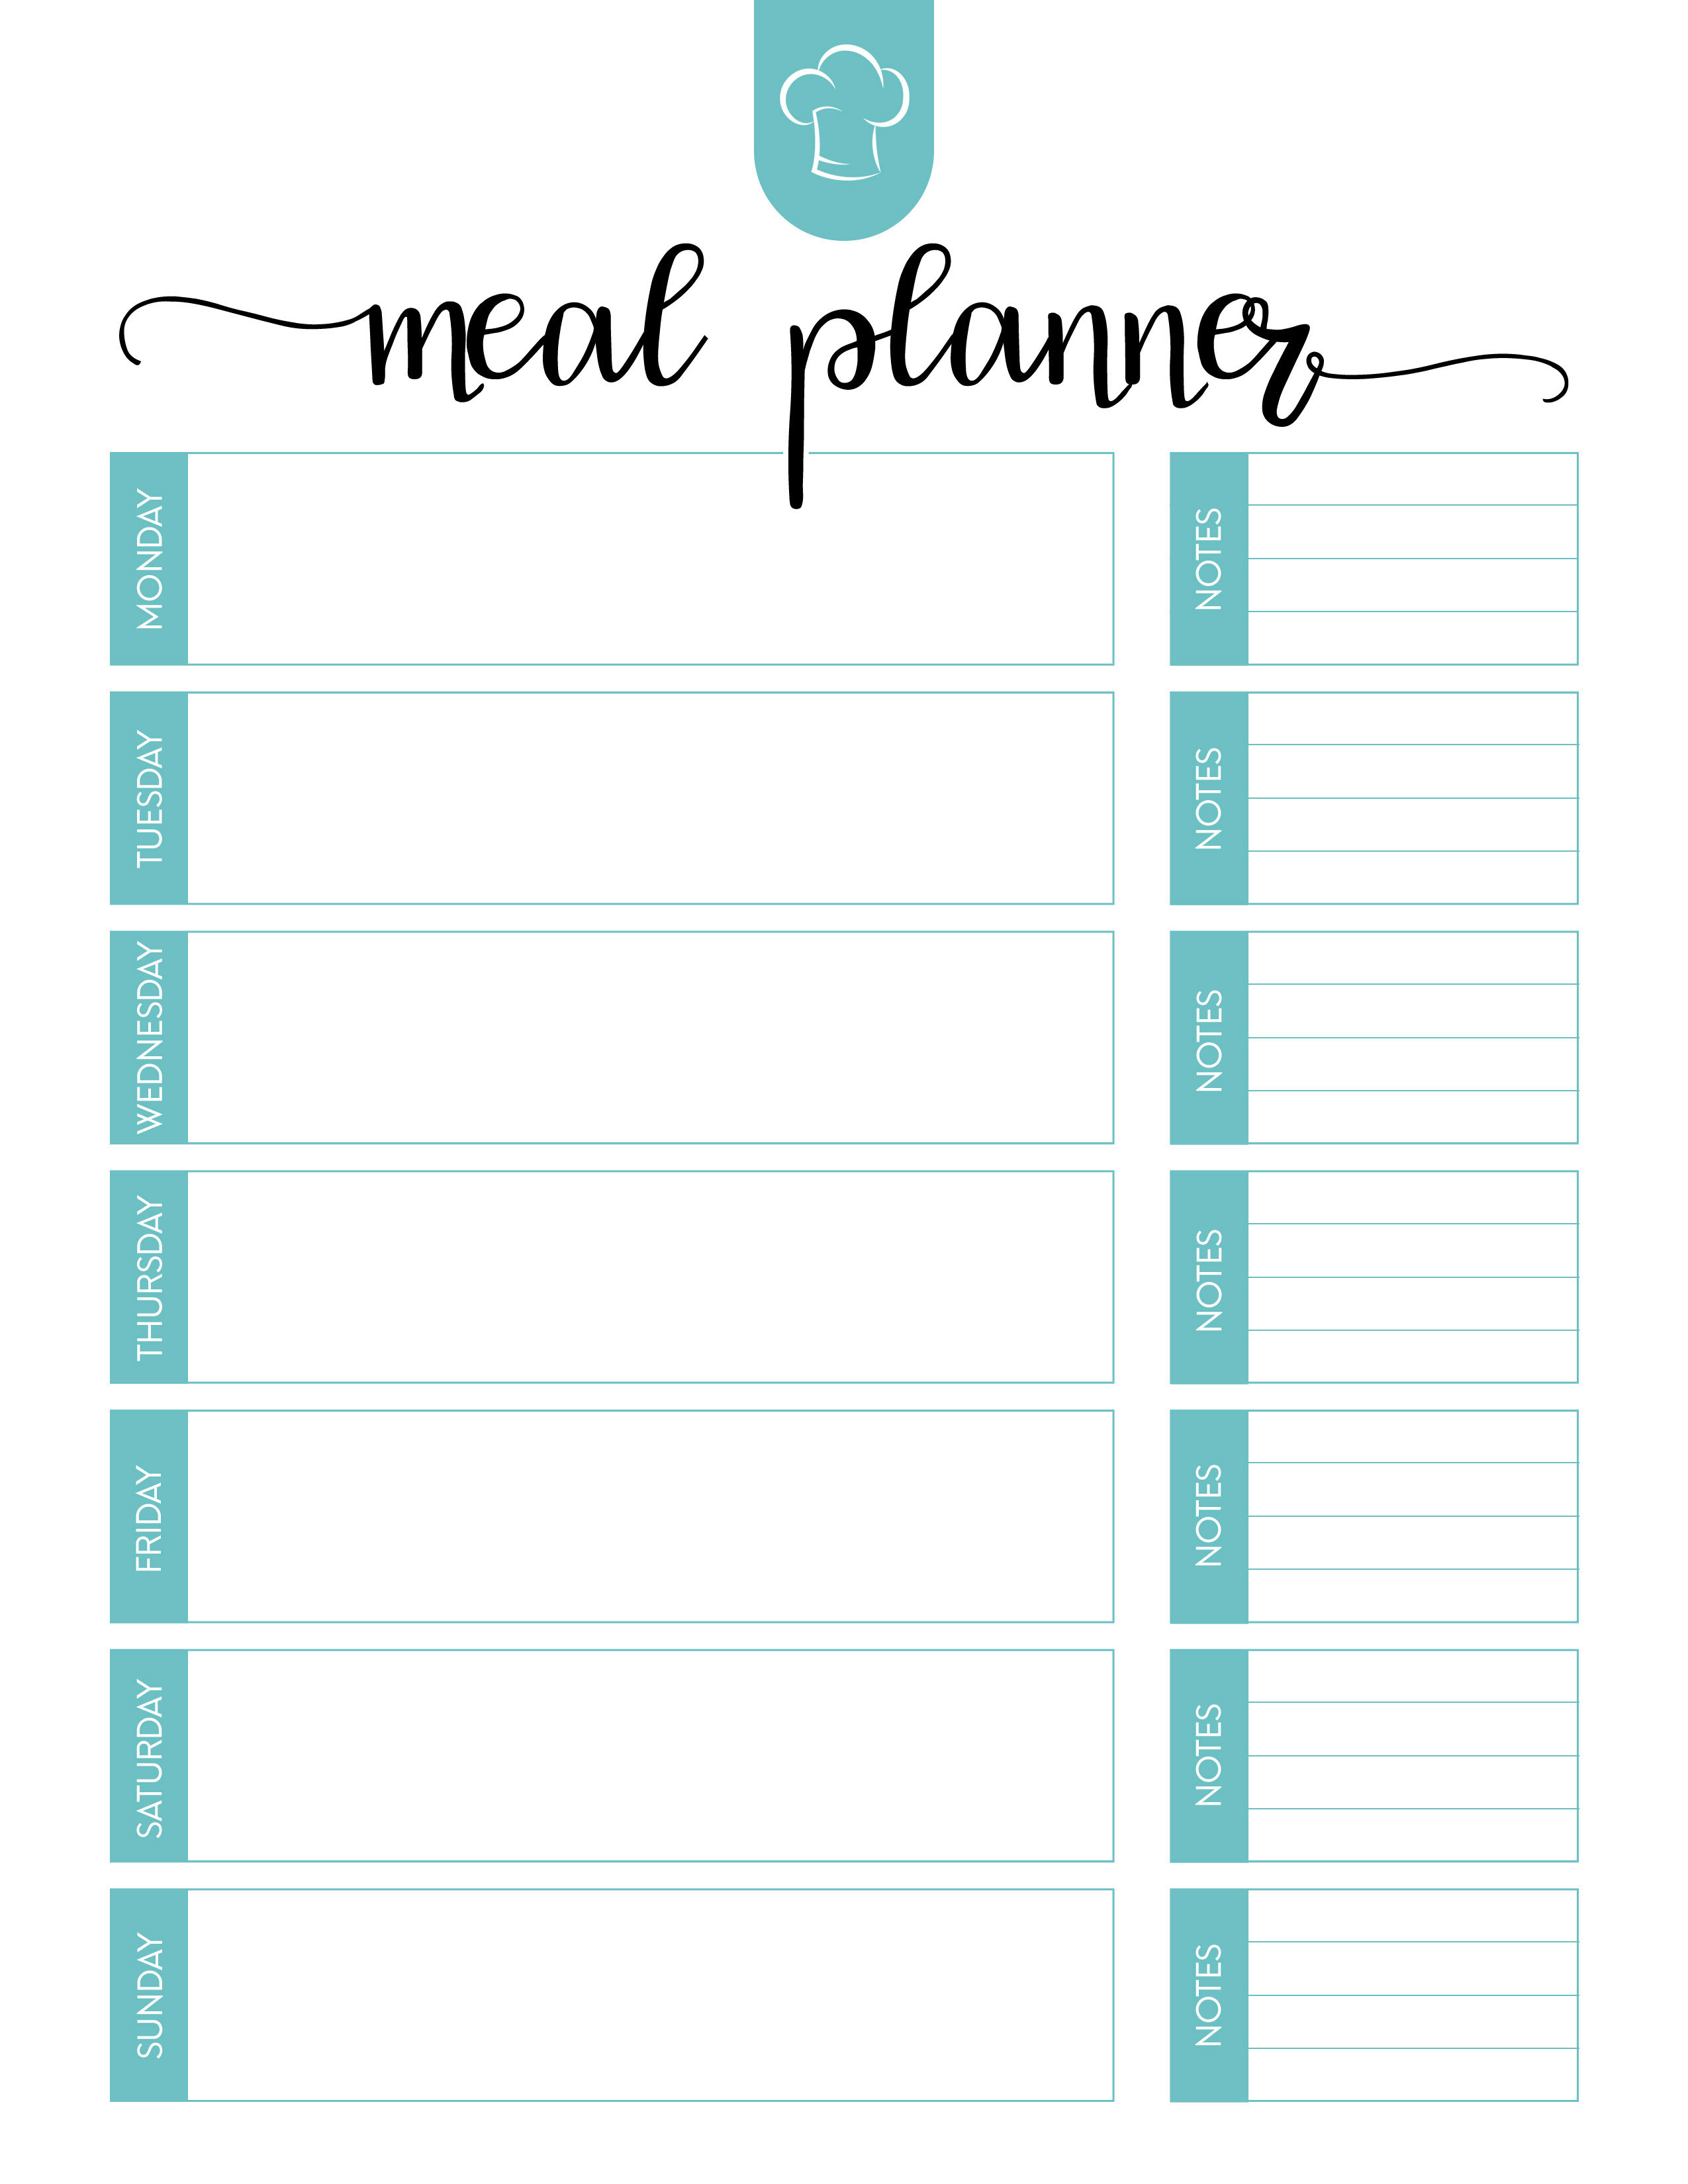 Free Printable Meal Planner Set - The Cottage Market - Free Printable Menu Planner